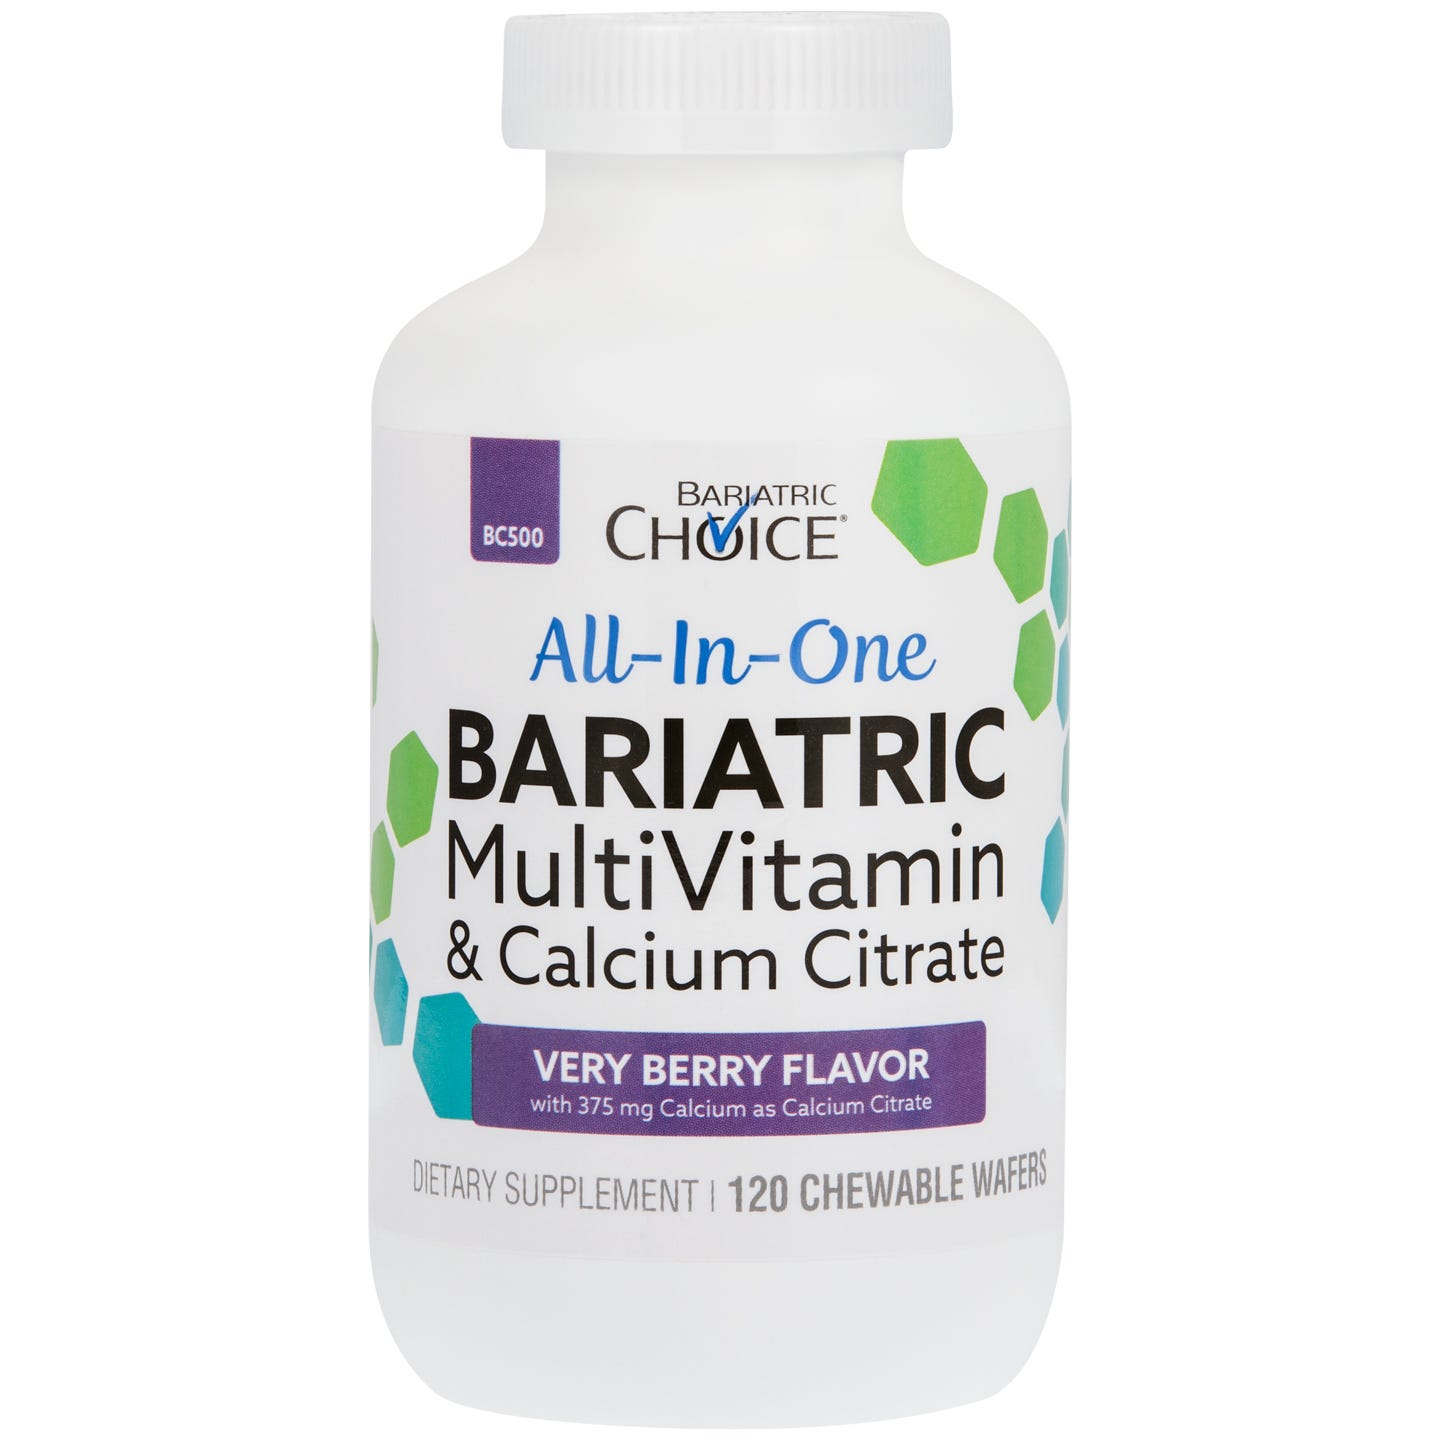 Bariatric Choice All-In-One Chewable MultiVitamin & Calcium Citrate, Very Berry (120ct)